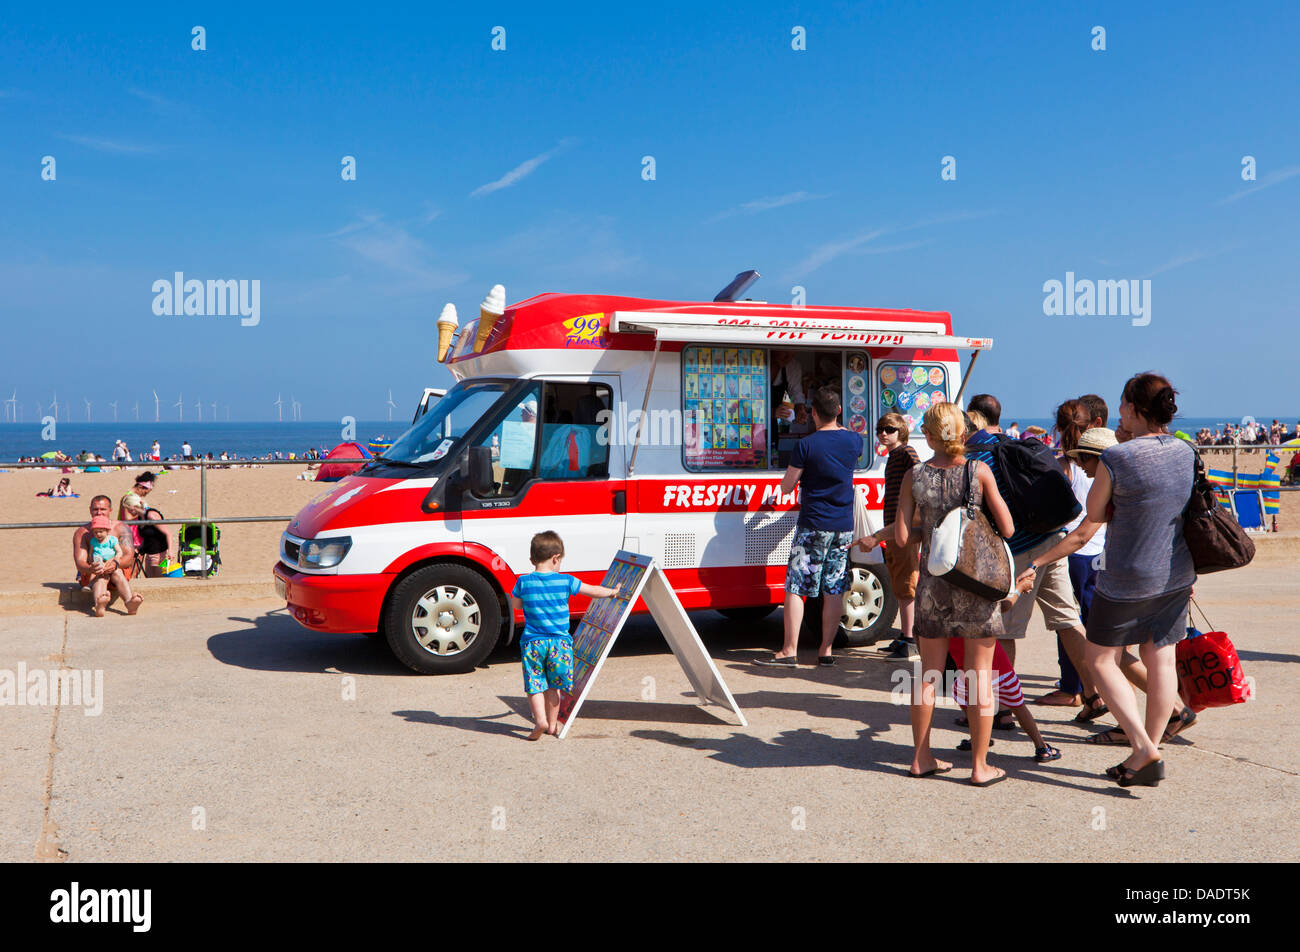 People queueing for an ice cream from an ice cream van parked on Skegness beach promenade Lincolnshire England UK Stock Photo